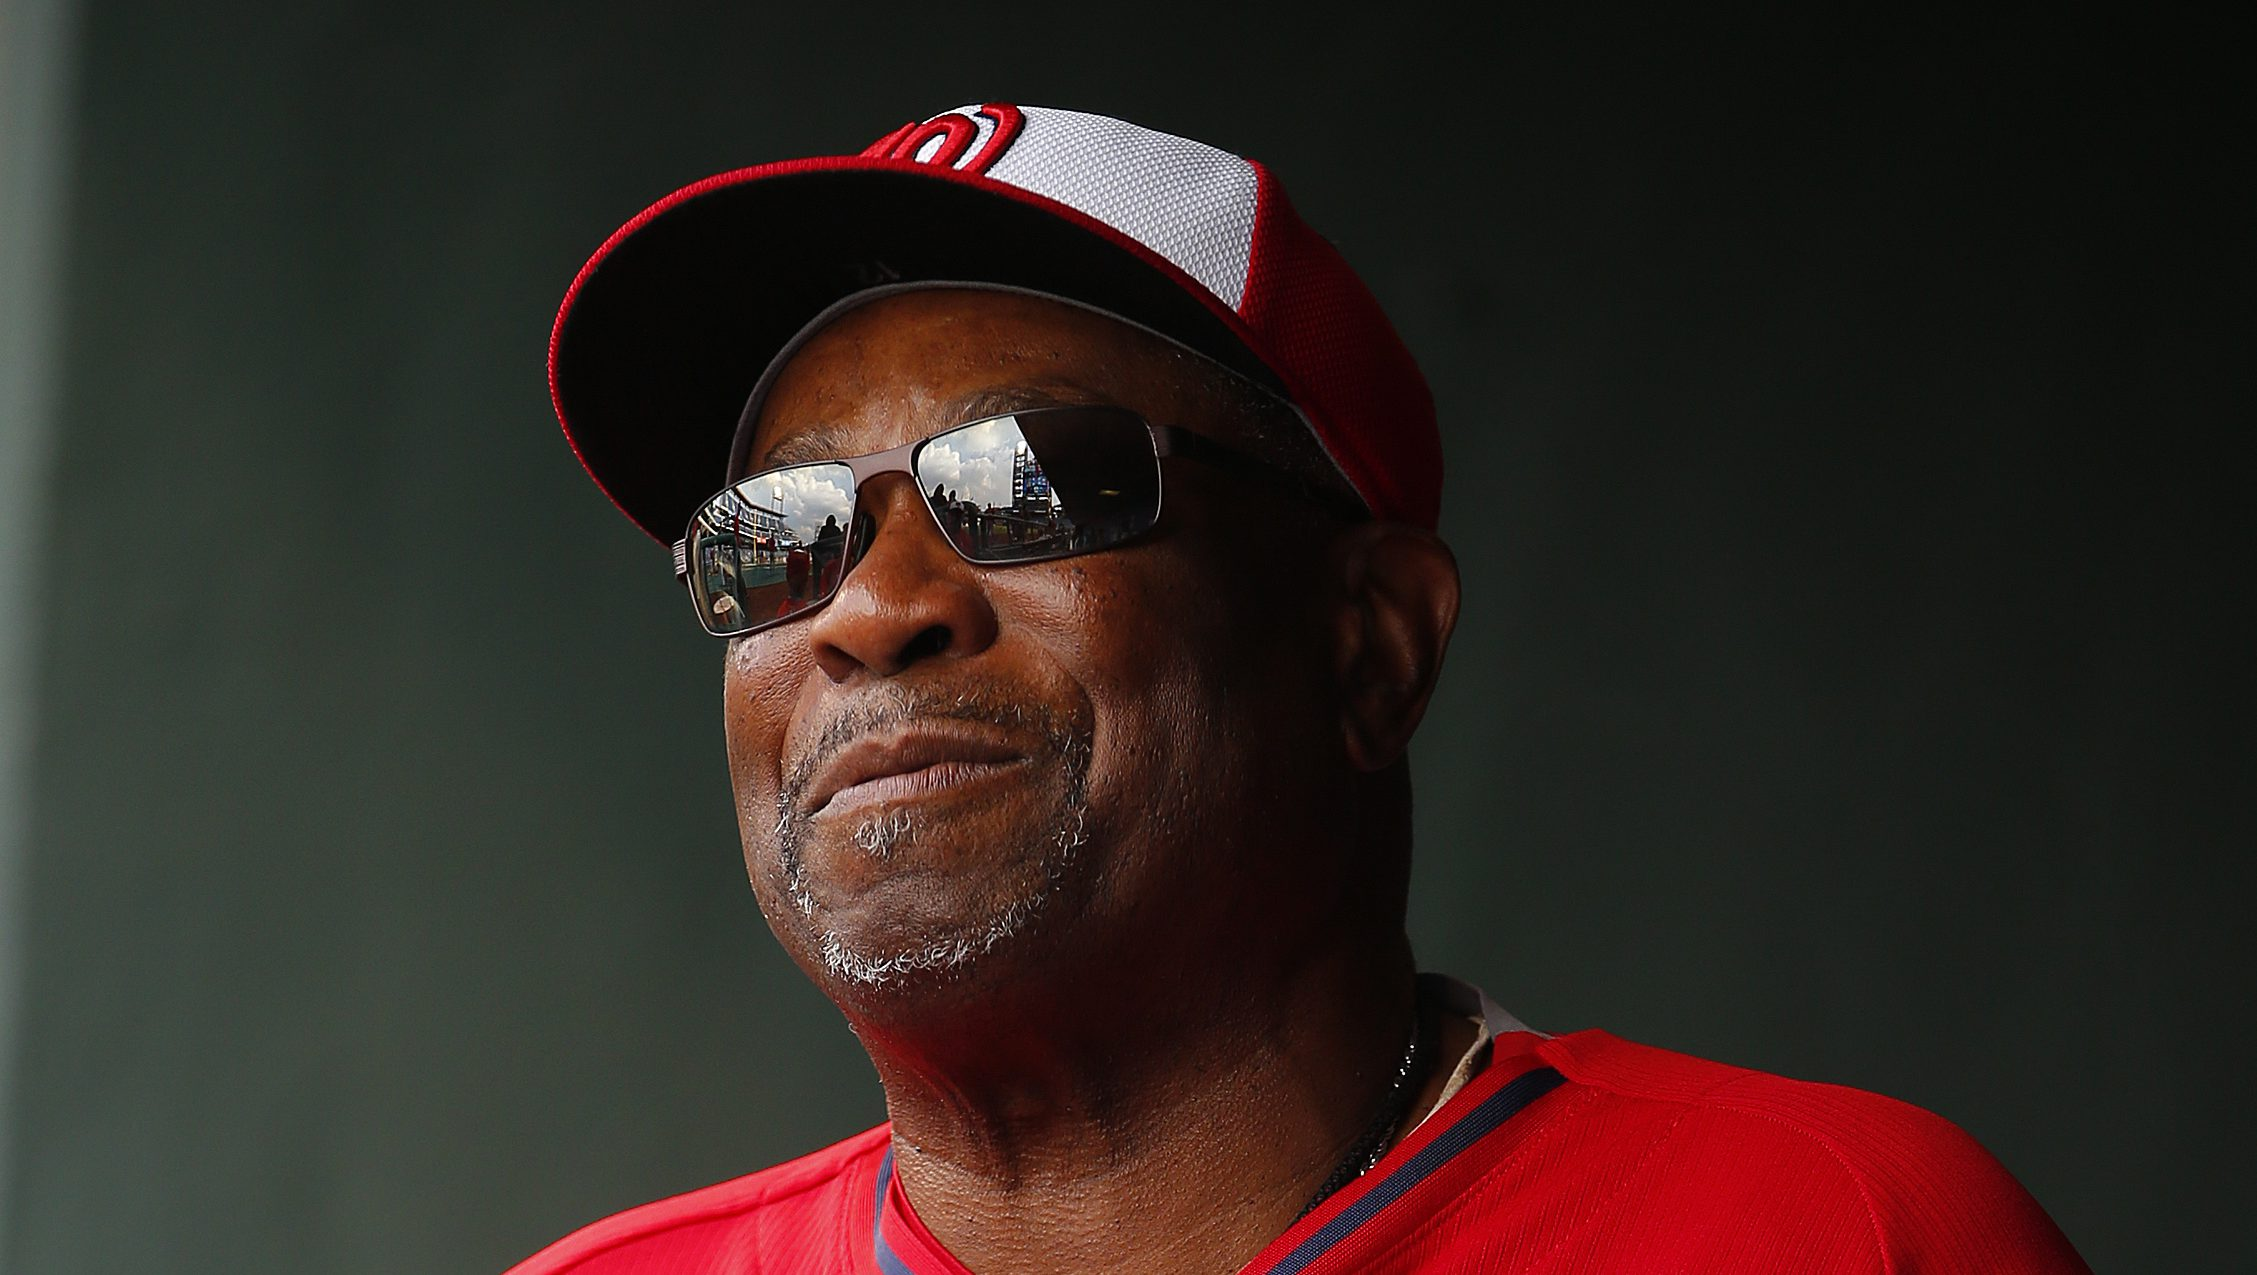 Report: Dusty Baker hired to manage the Astros